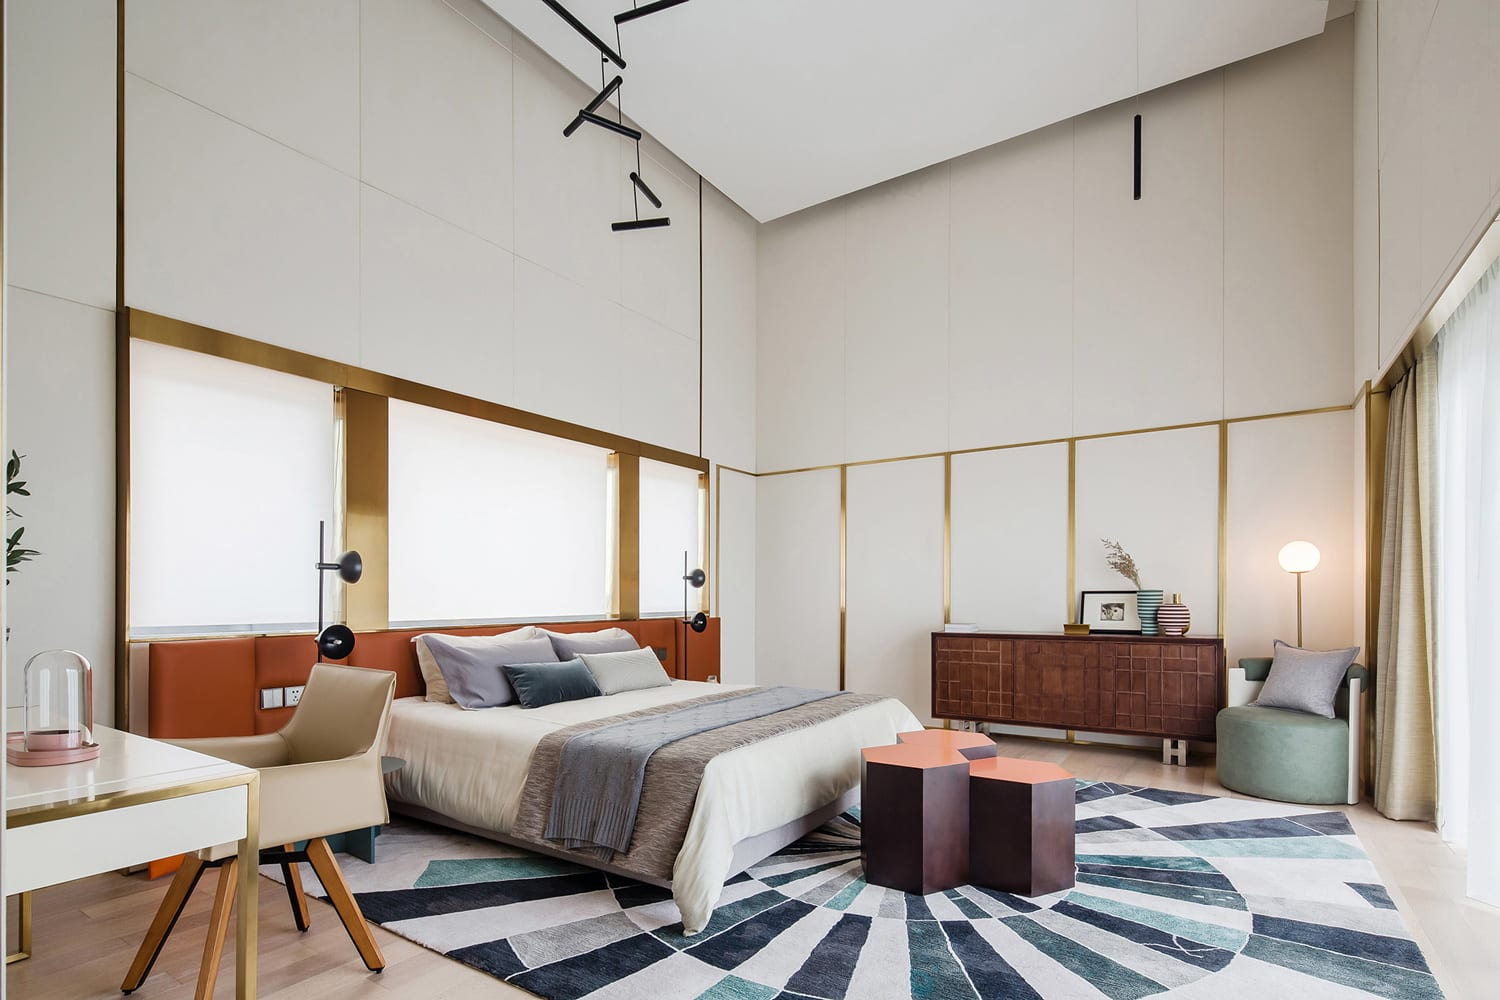 Tianjin Binhai Bay Fortune Center Residential Display Suite by Co-Direction Design   Yellowtrace